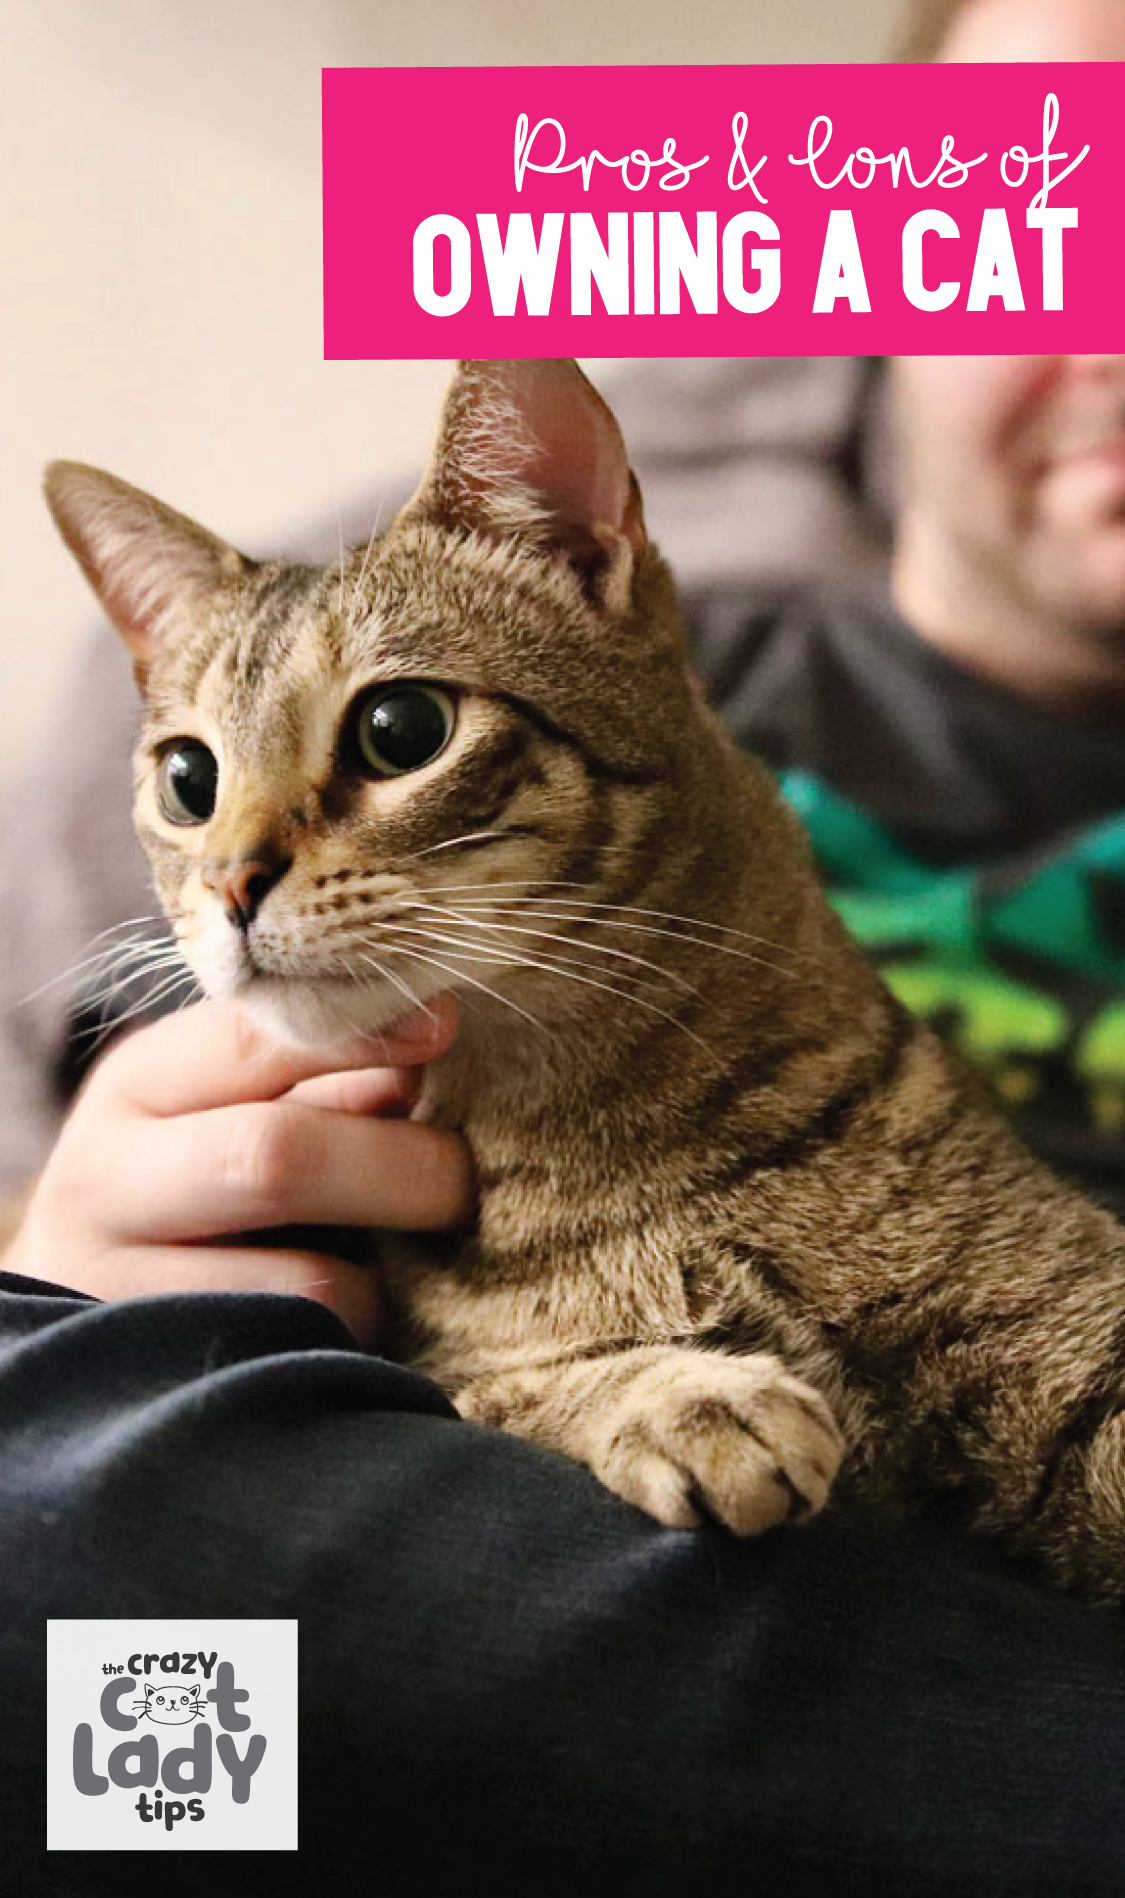 Sharing your home with a feline friend can have its disadvantages as well as advantages. Many people enjoy the companionship that a pet brings to their life, but when you own a cat the idea of companionship brings on a whole new meaning.